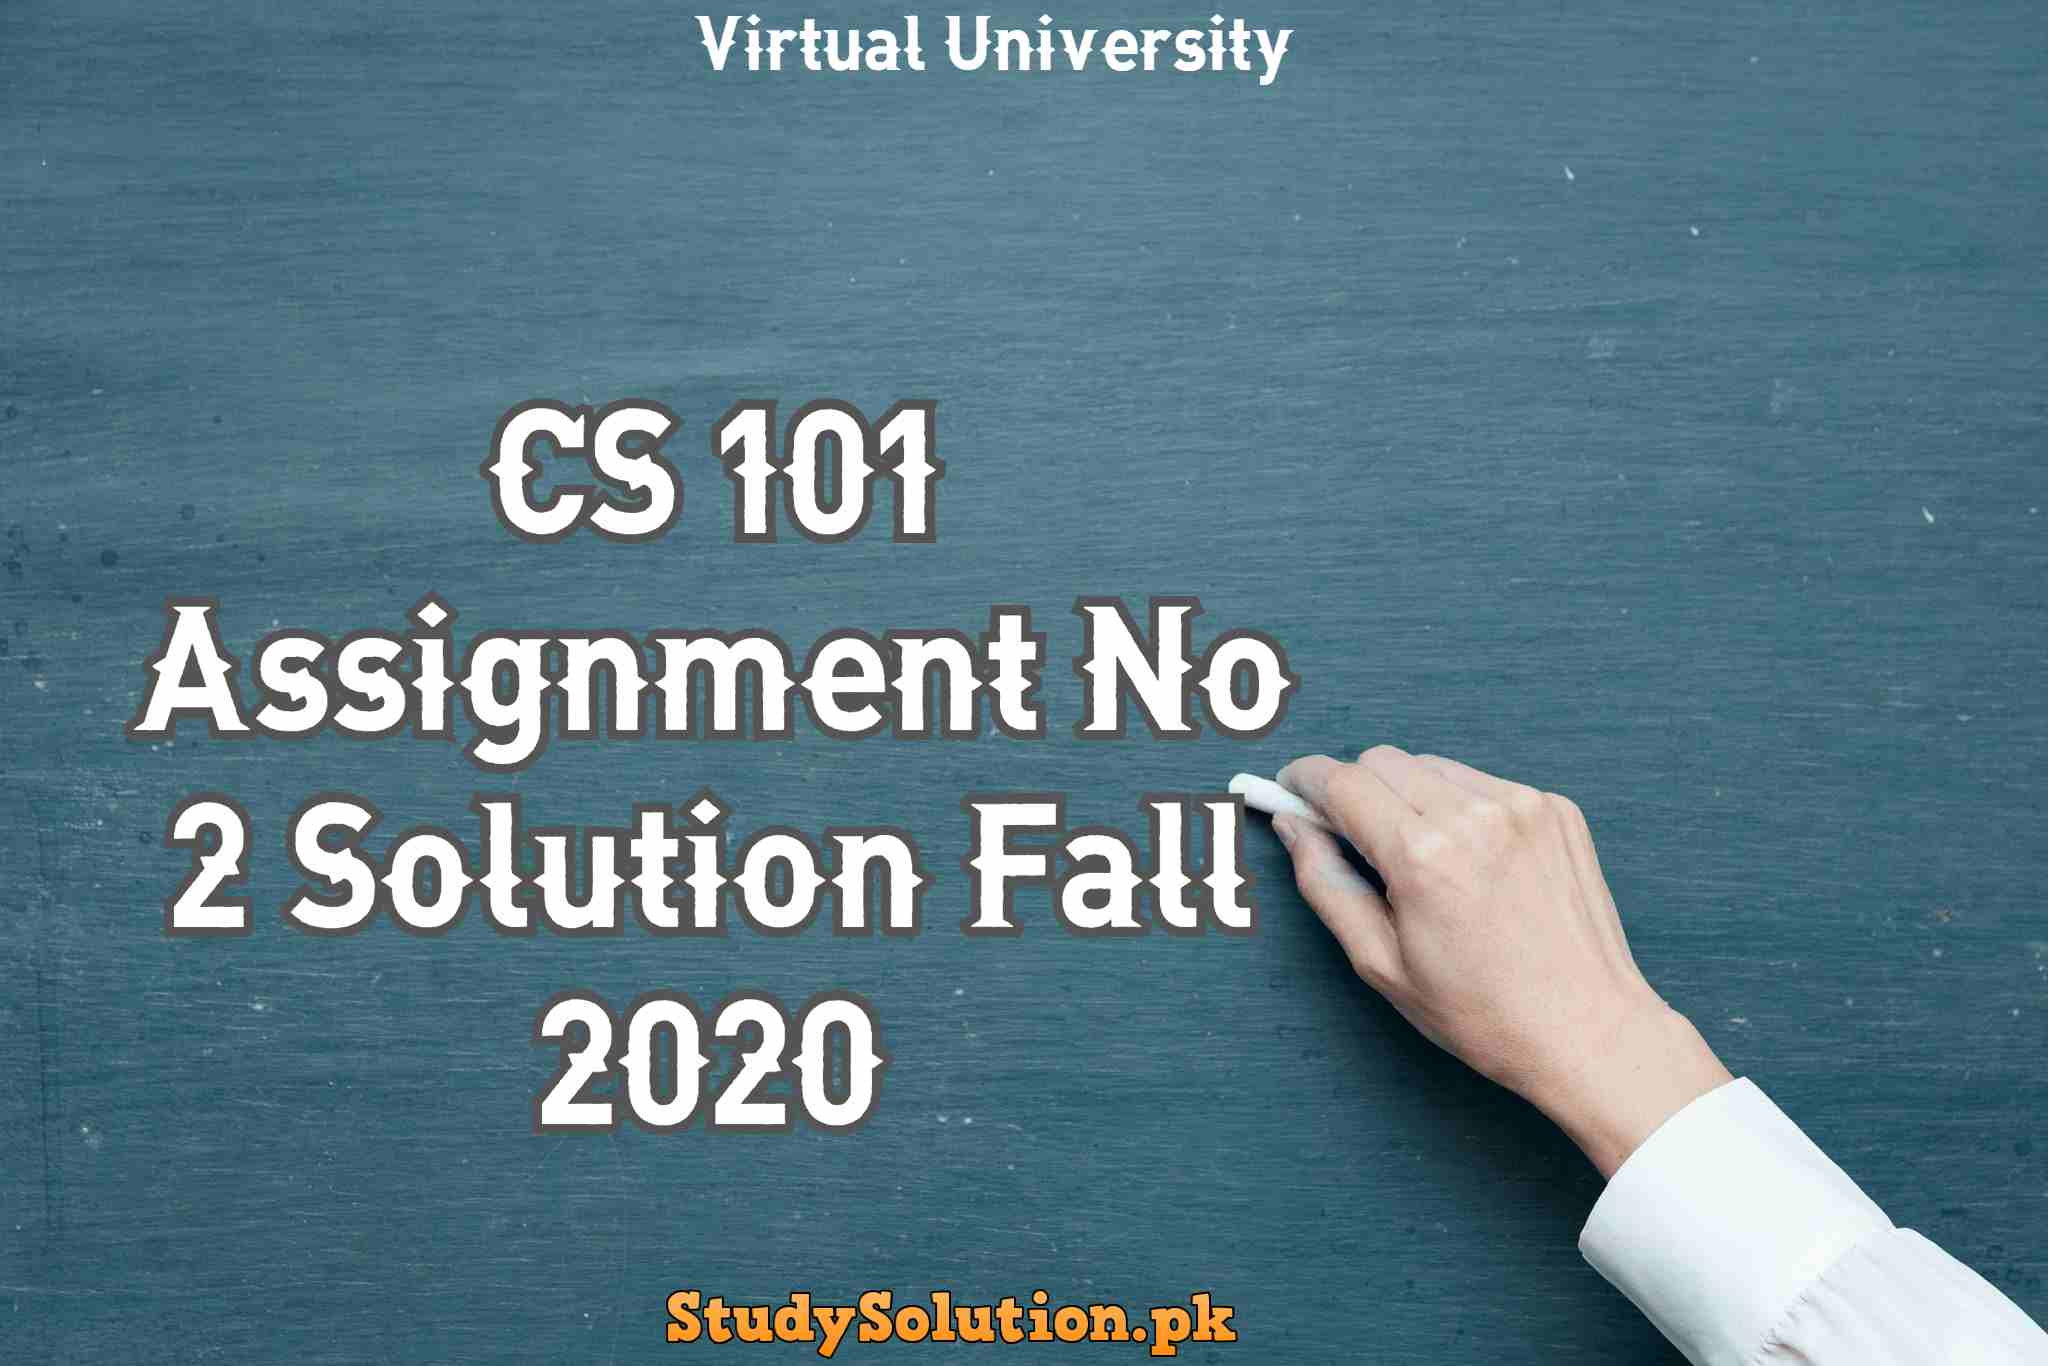 CS 101 Assignment No 2 Solution Fall 2020